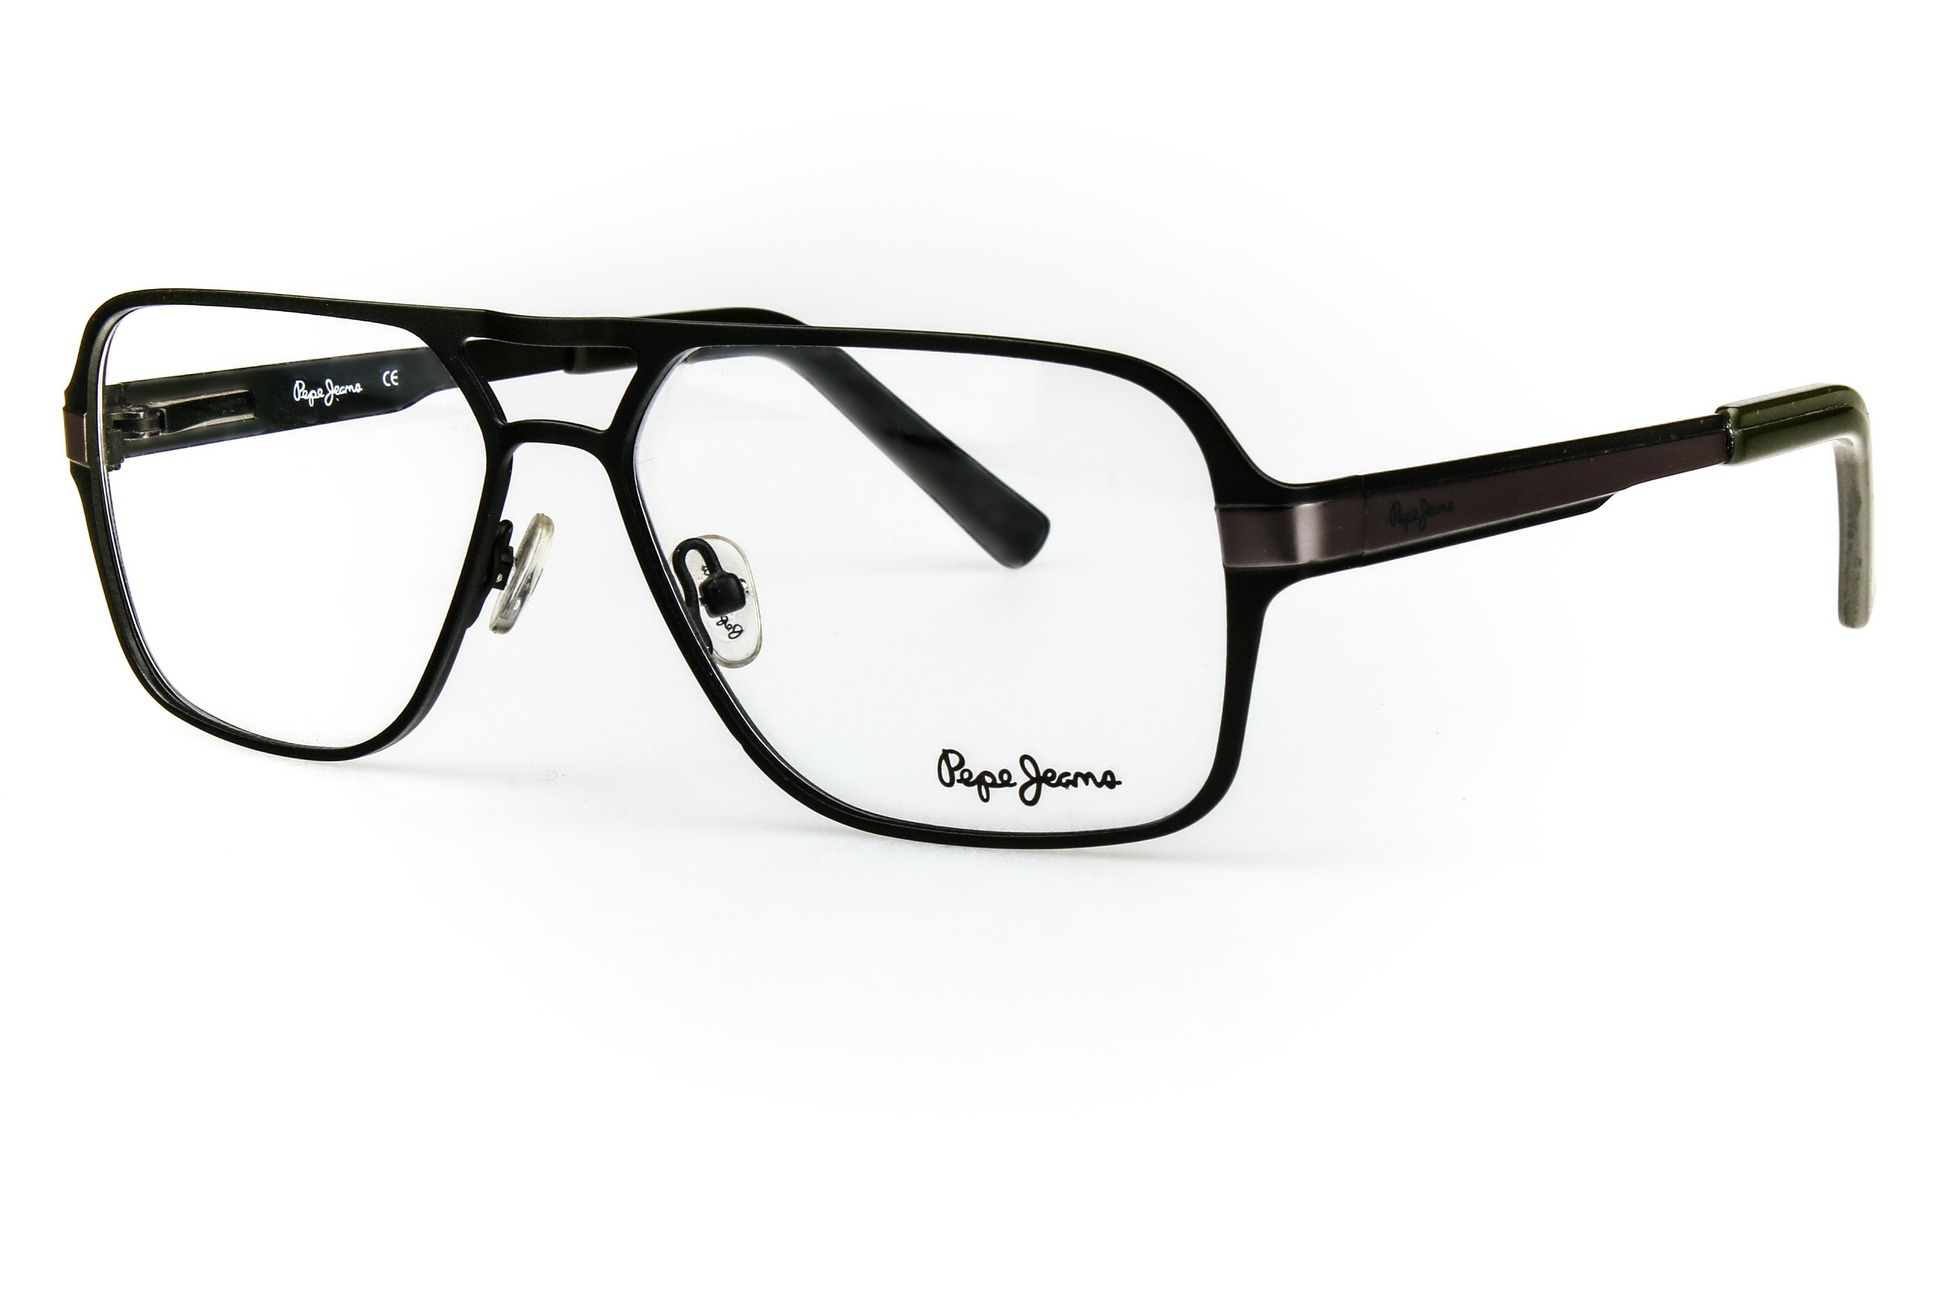 Pepe Jeans 1097 C2